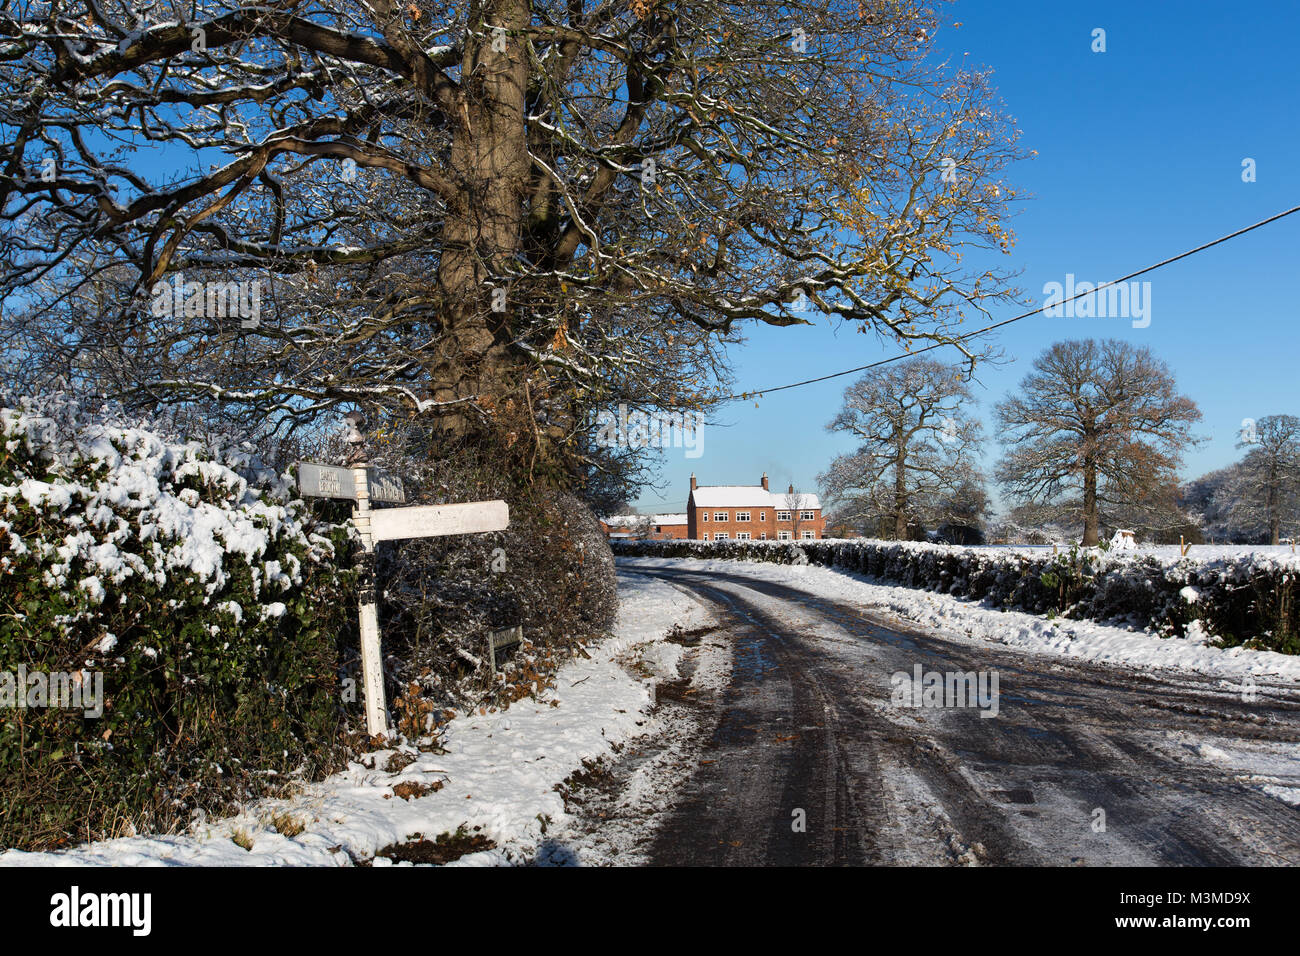 Village of Coddington, England. Picturesque winter view of a rural non-gritted road, in rural Cheshire. - Stock Image